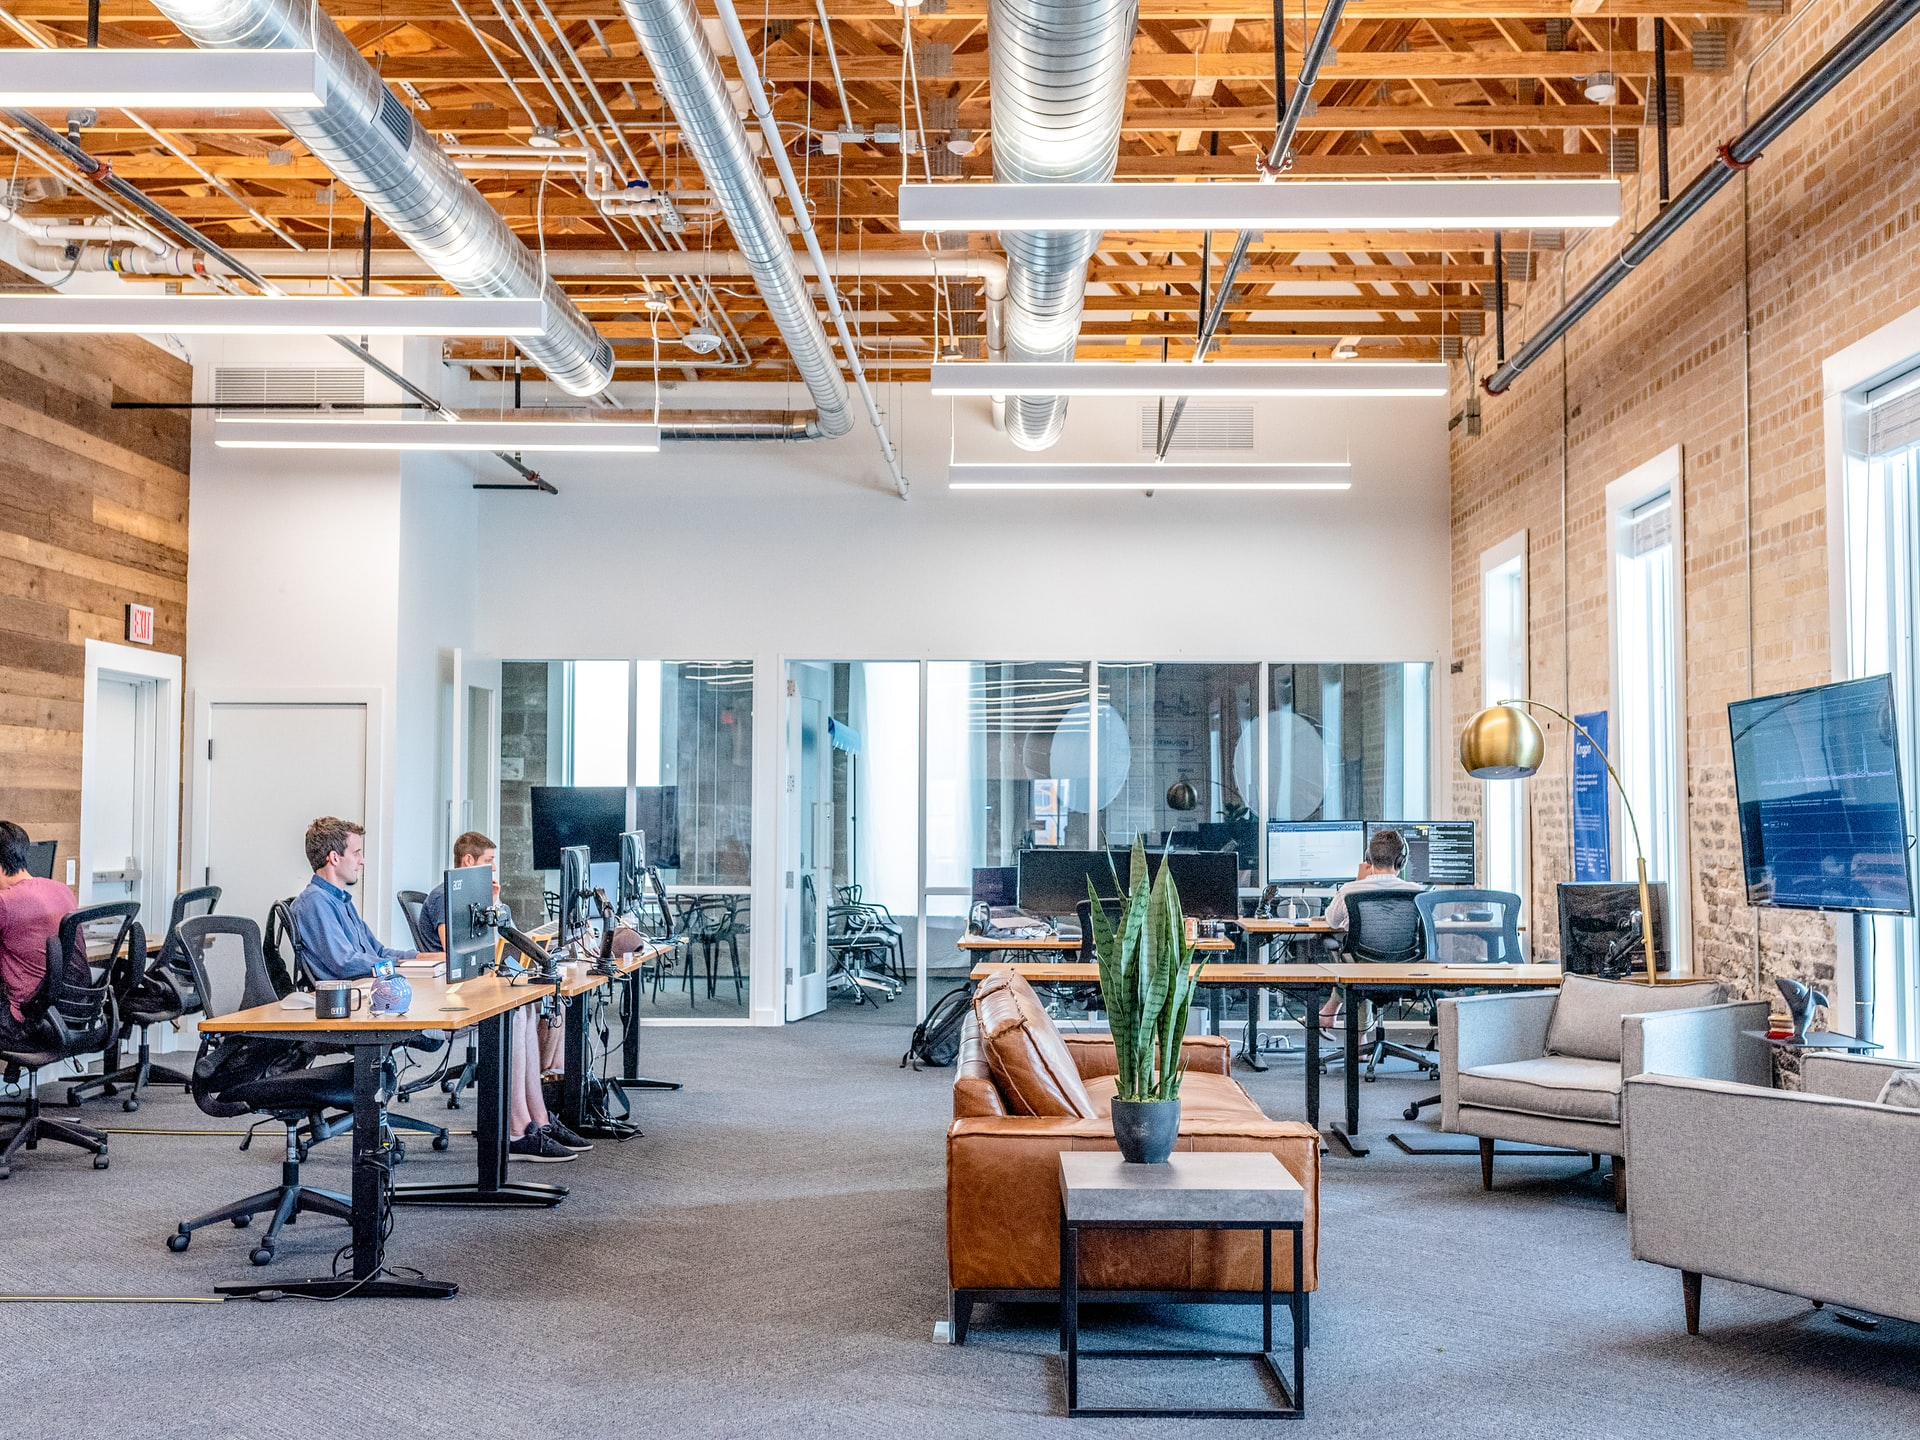 Coworking Space vs. Traditional Office Space: Which is Better?